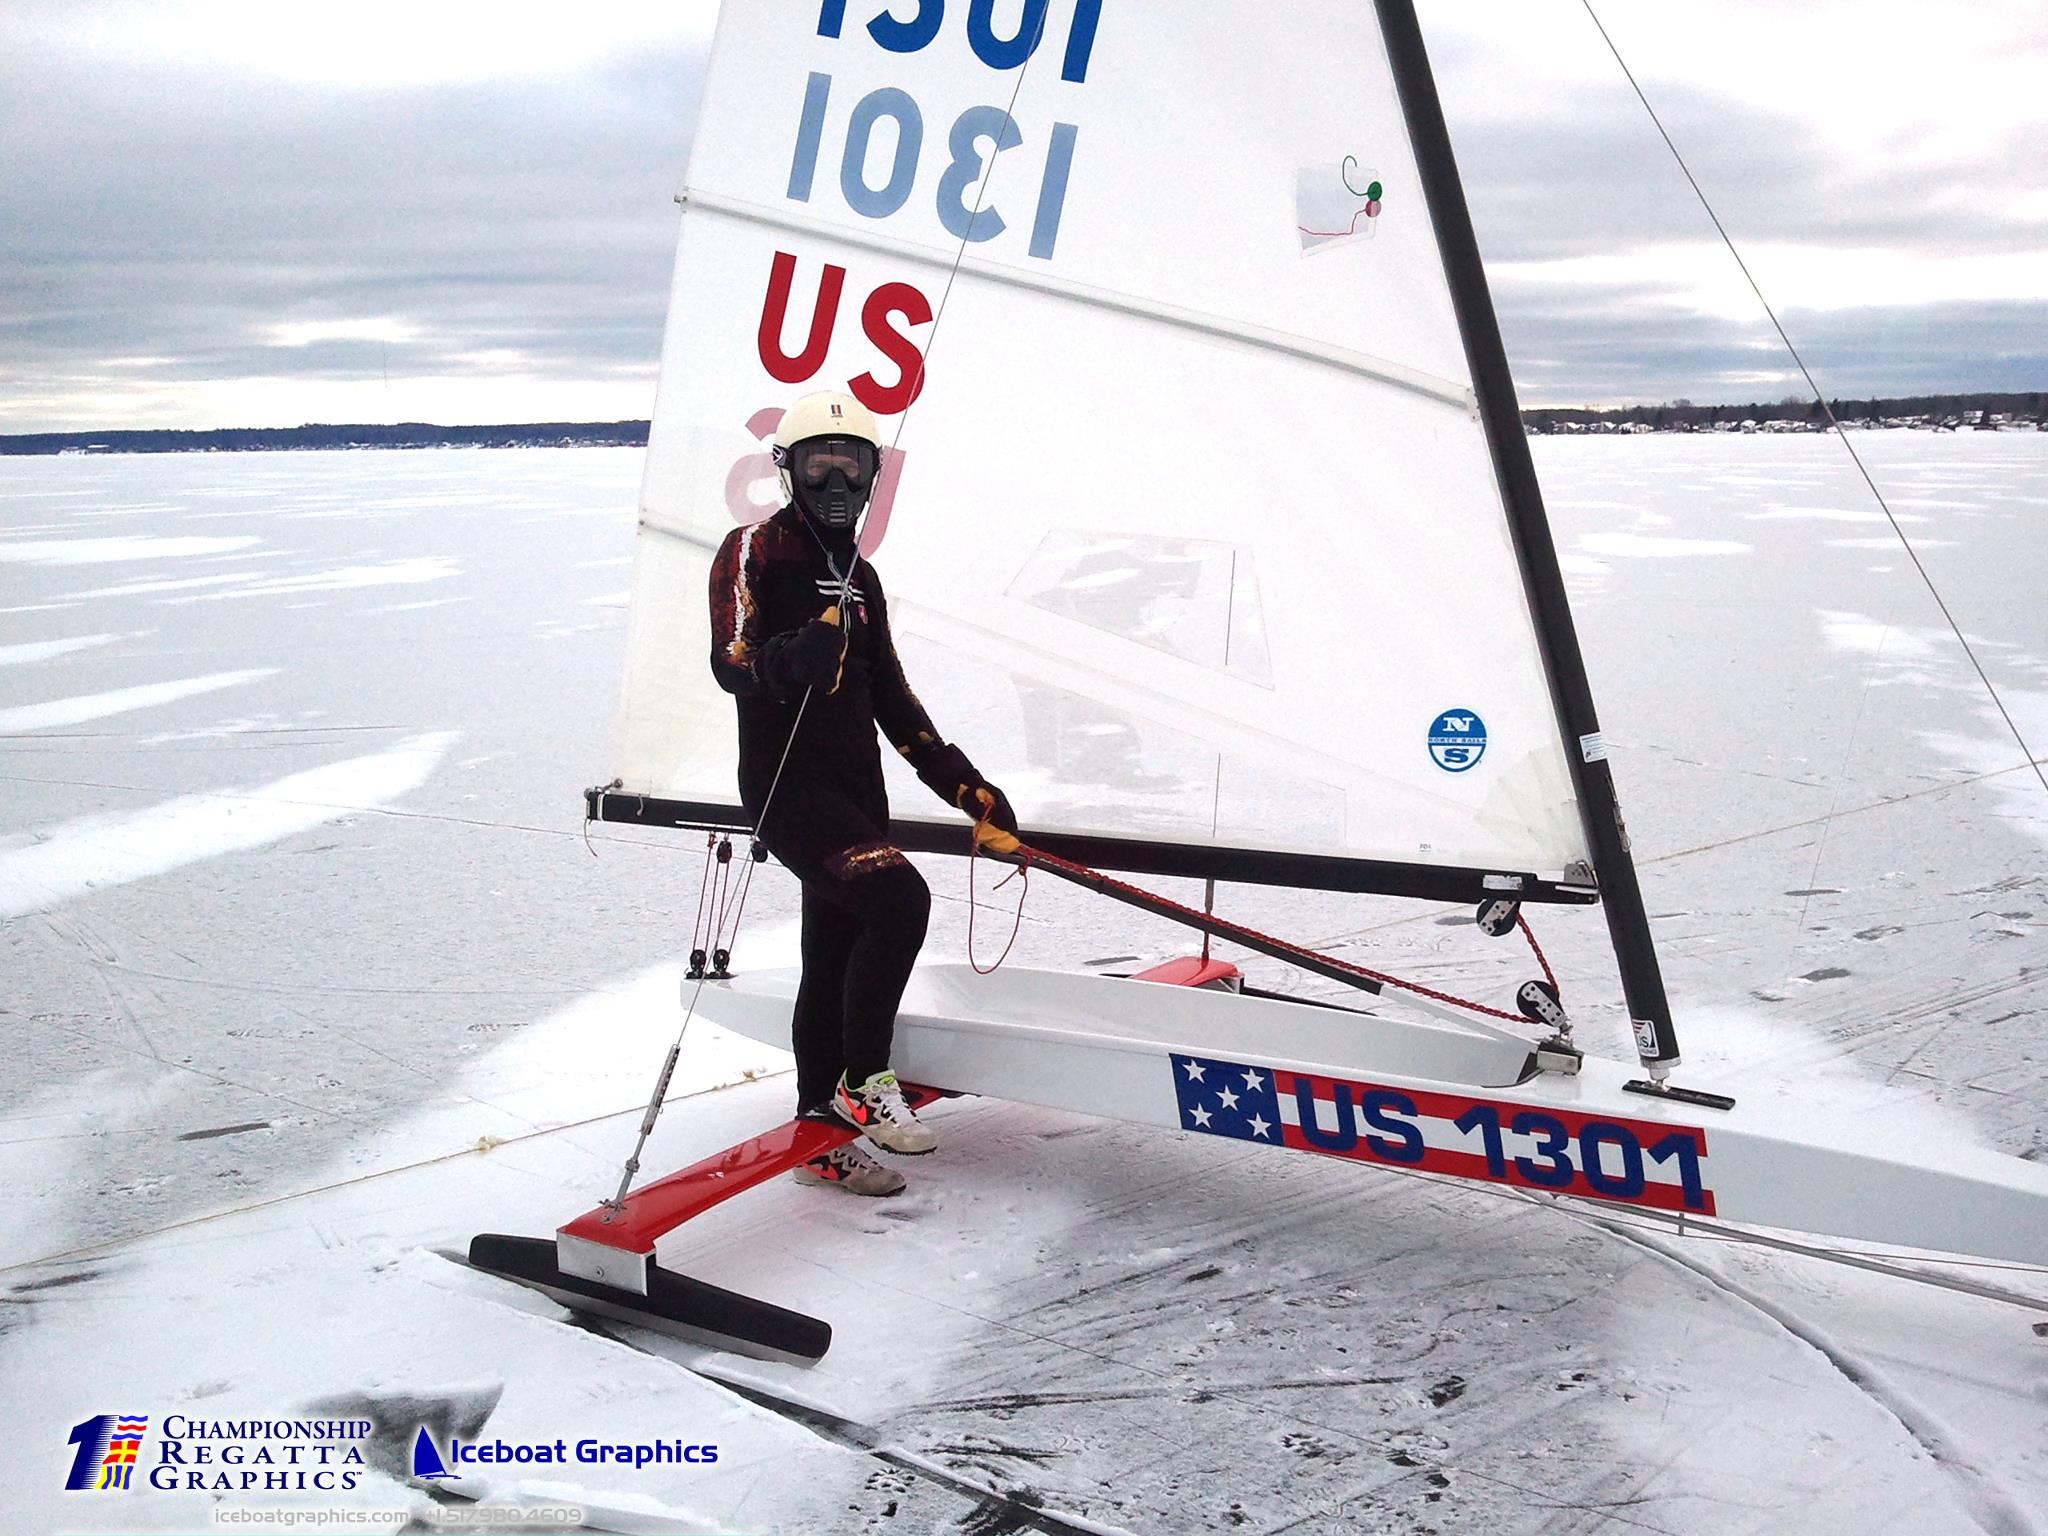 Iceboat graphics